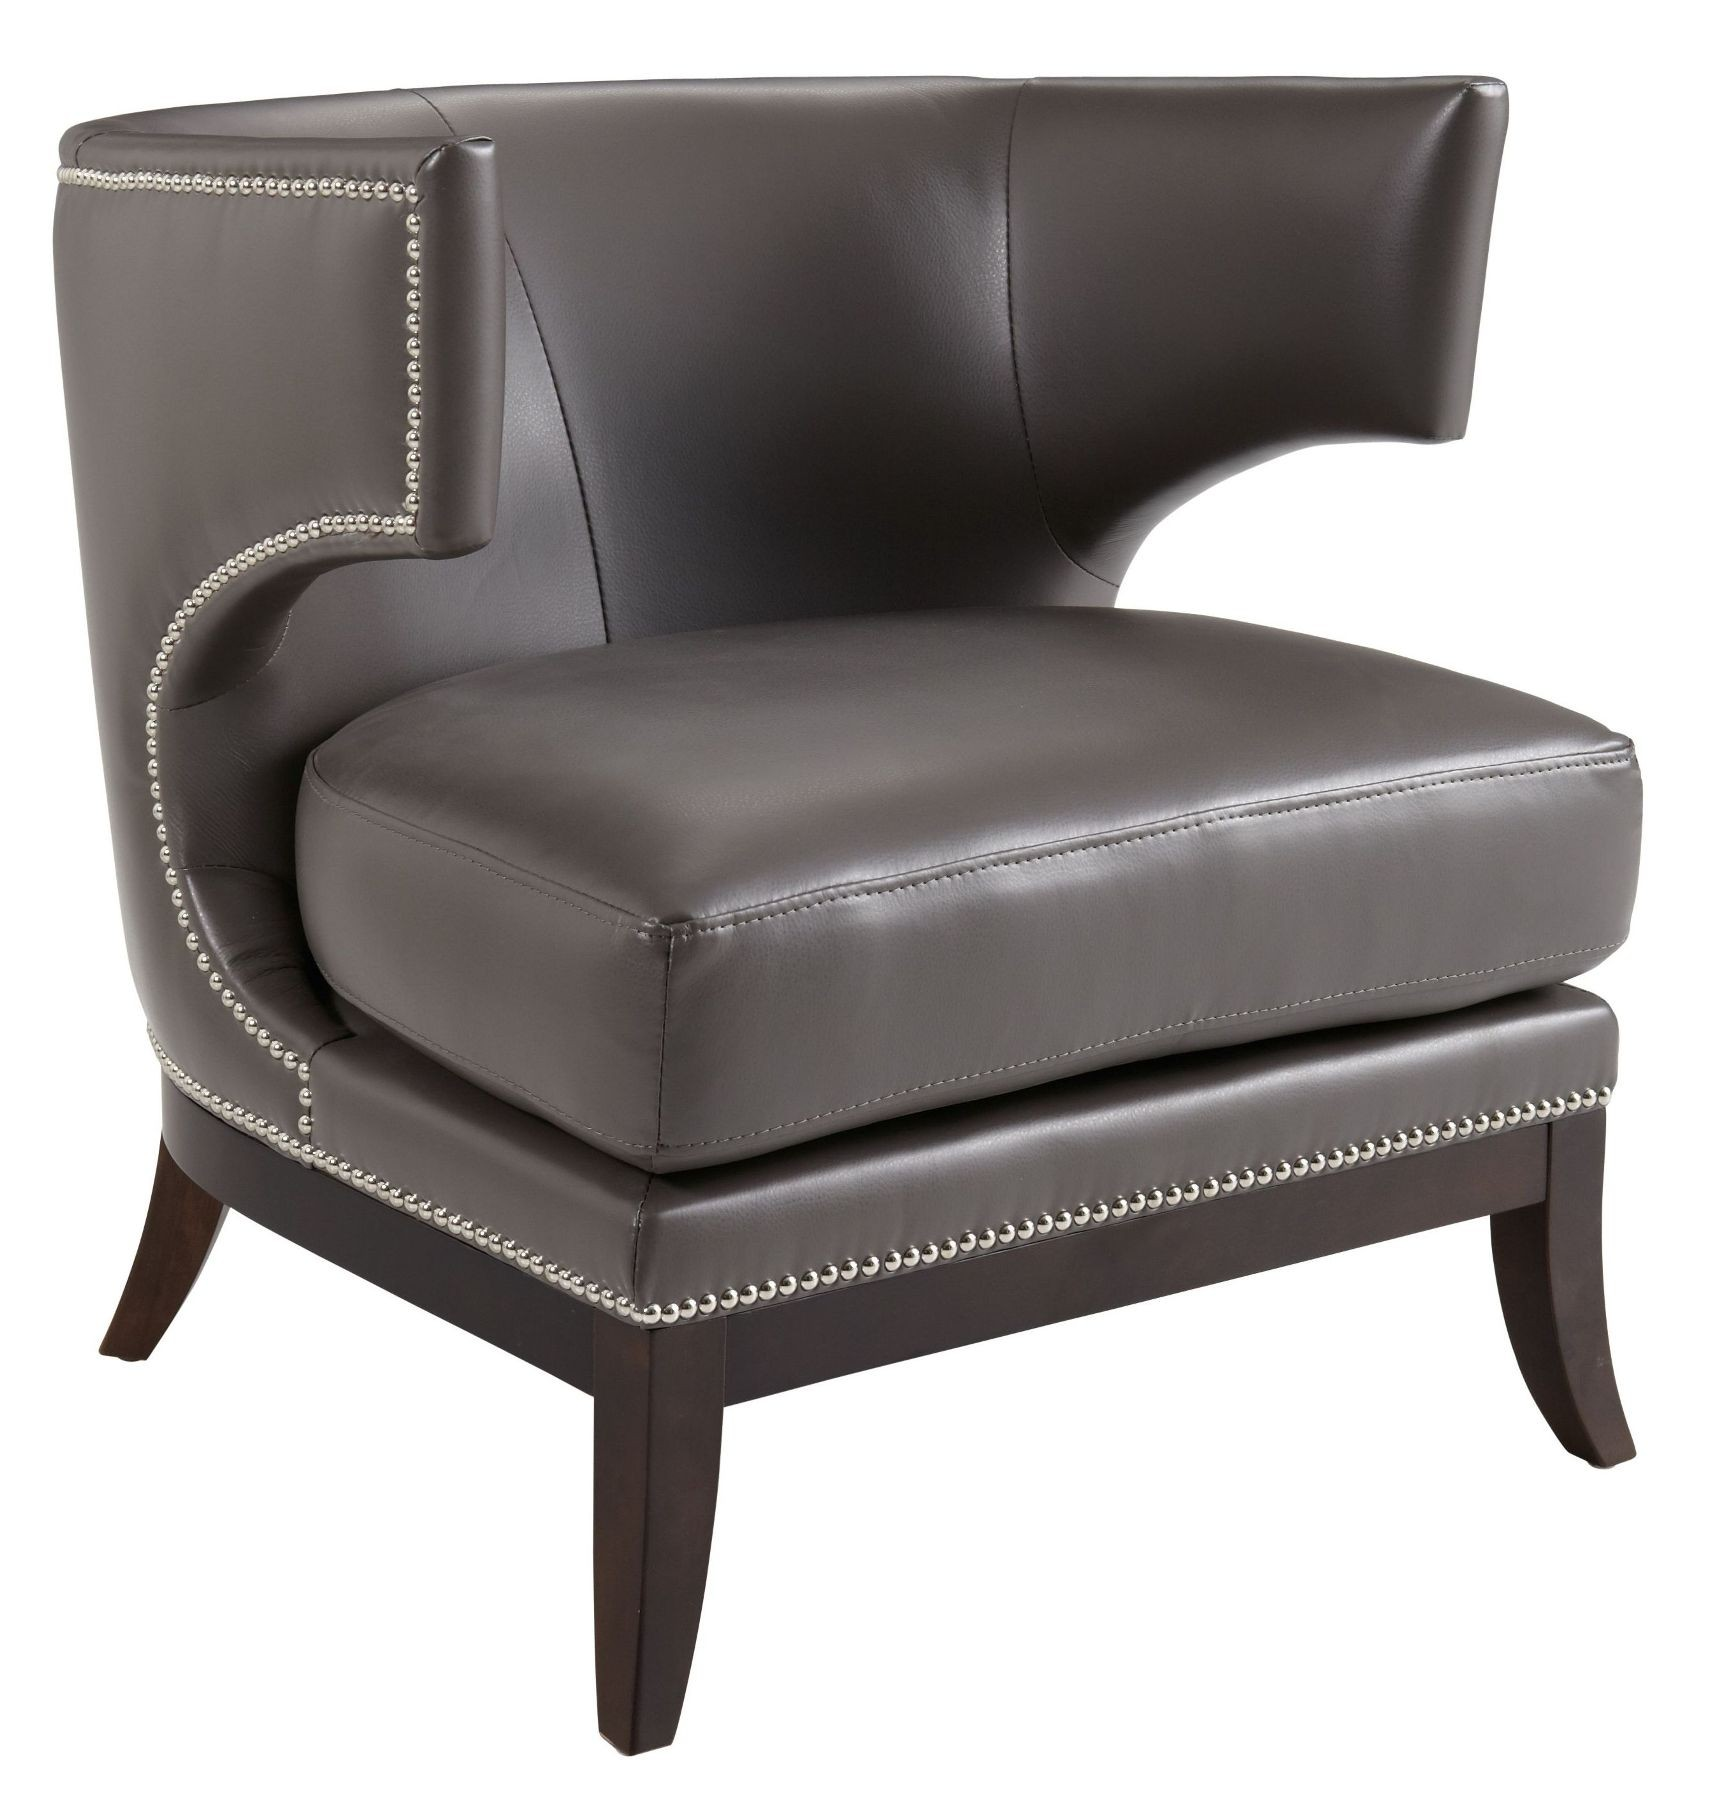 Its Durability Depends On The Materialu0027s Quality, Bonded Leather Chair